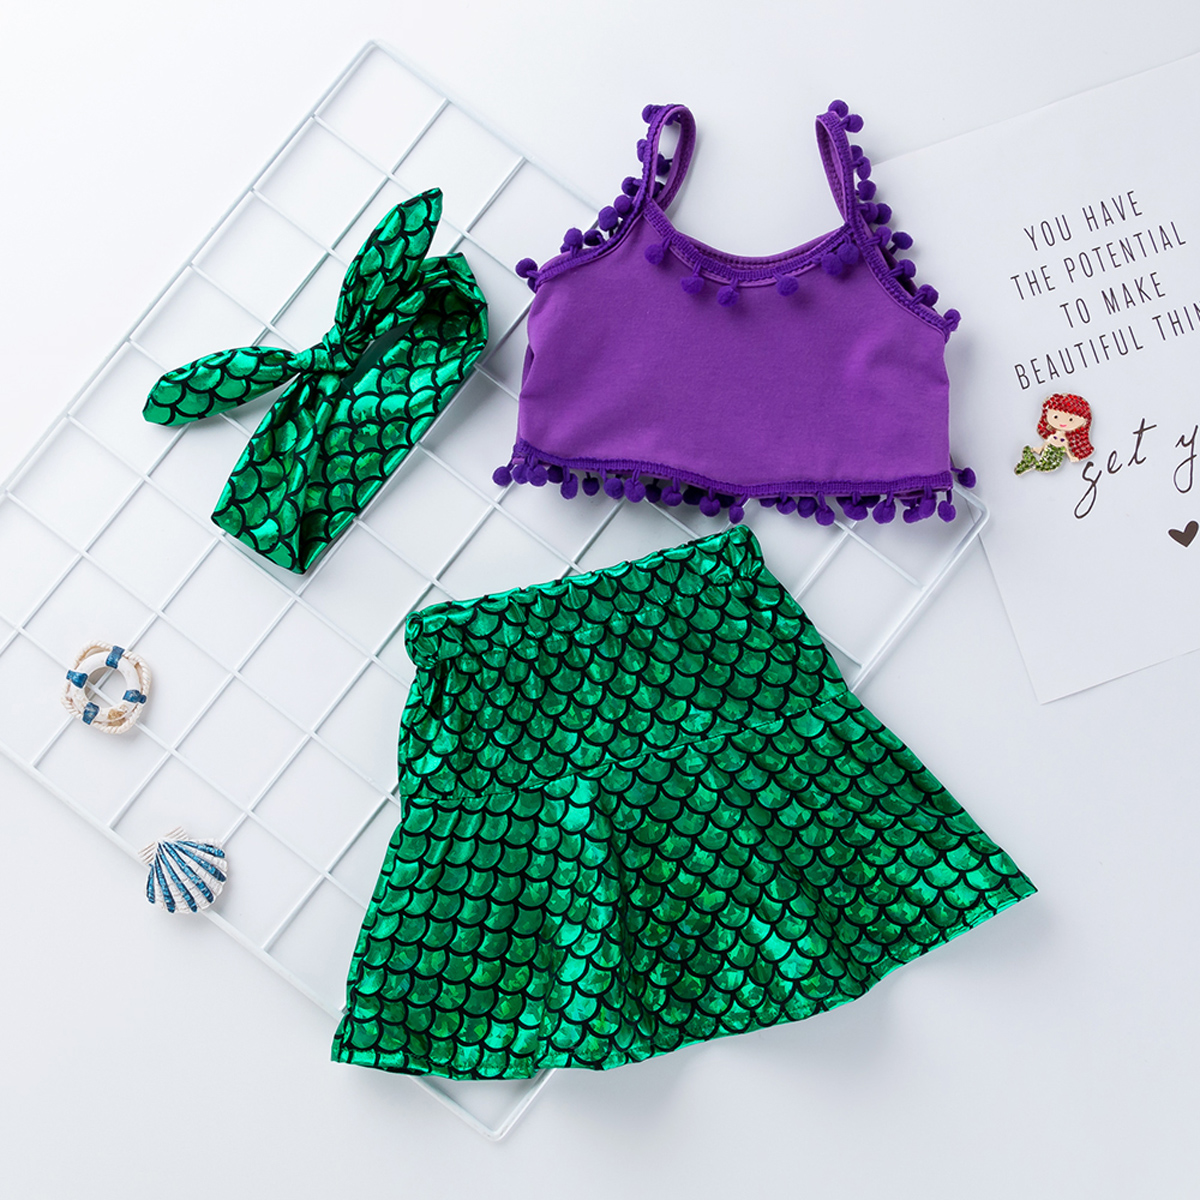 dc5de3aee2ef7 Toddler Girls Strap Tops Vest+Mermaid Skirt+Headband Set Outfits Dress  Costume